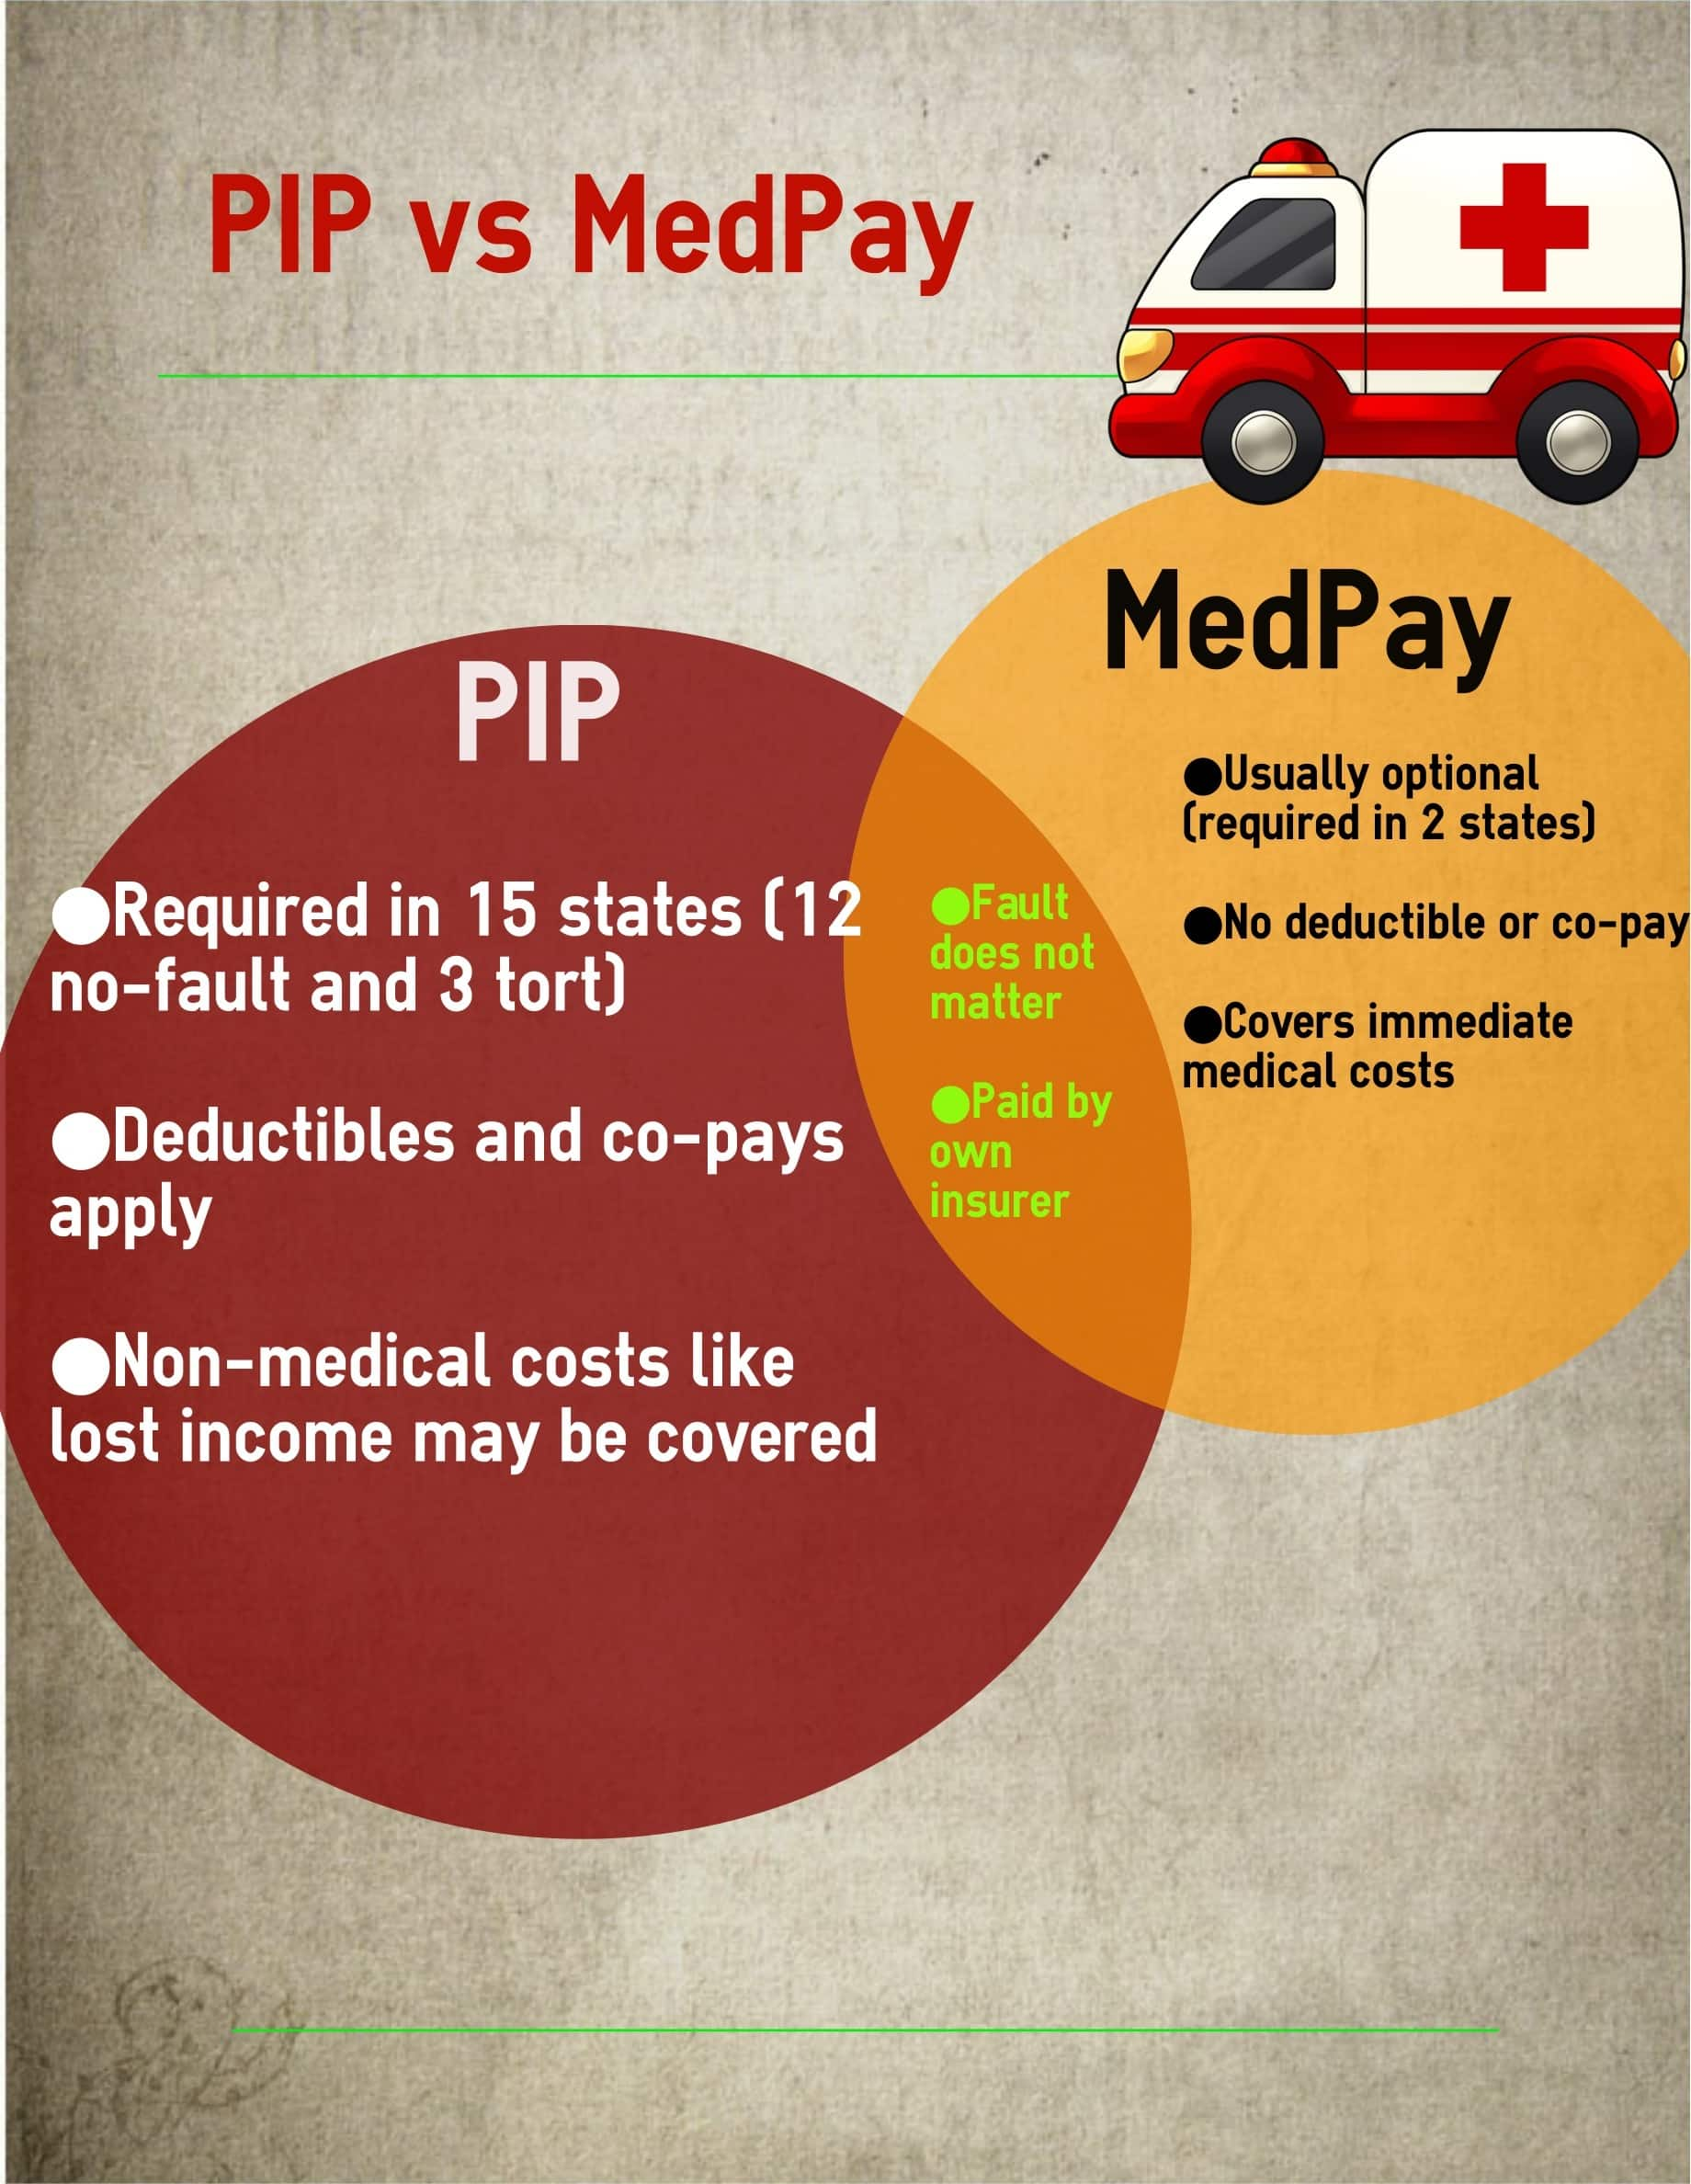 PIP vs MedPay infographic